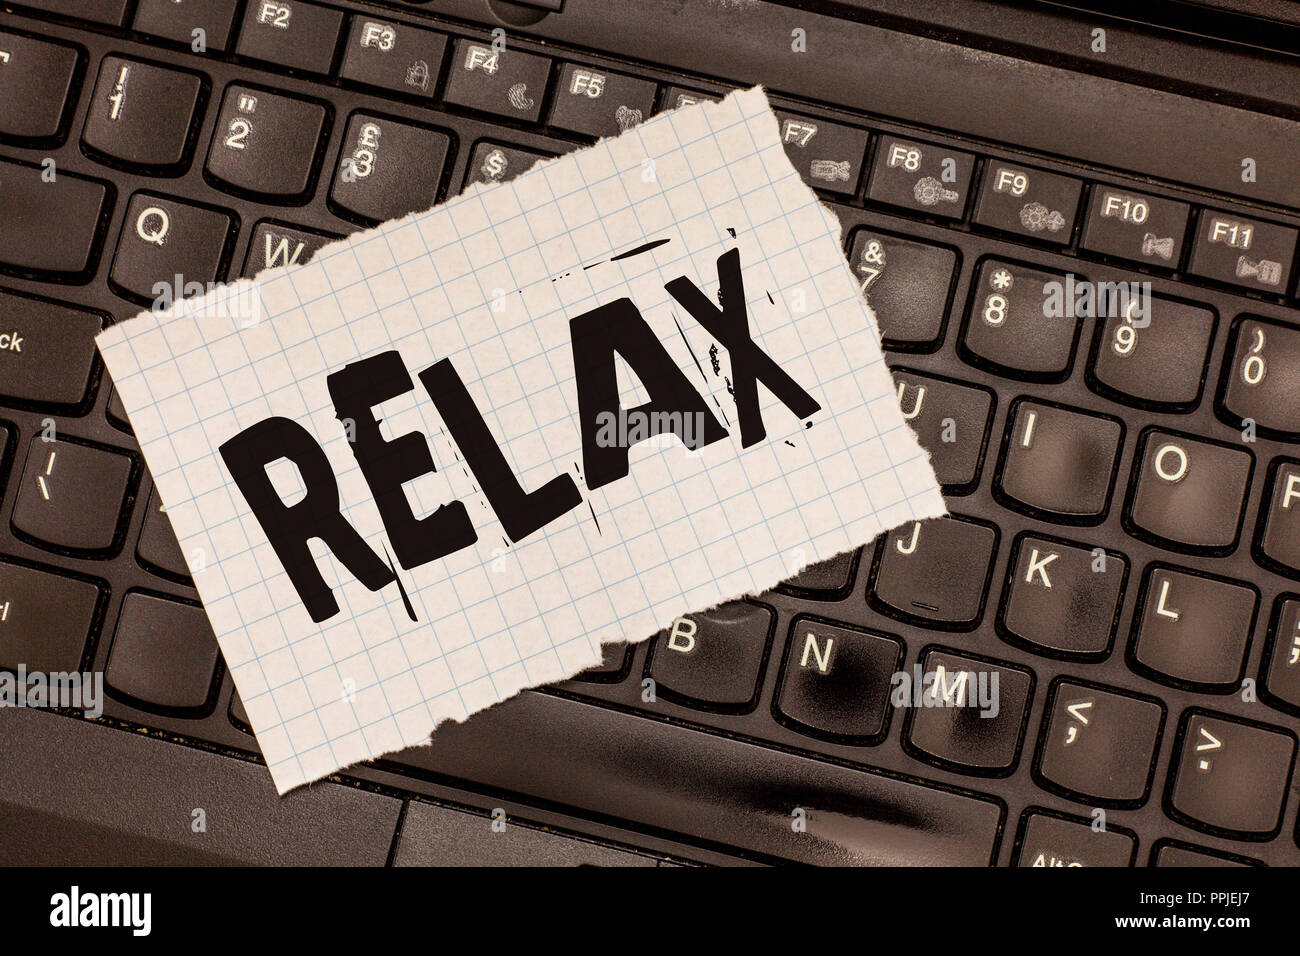 Word writing text Relax. Business concept for make or become less tense anxious calming down no restrictions. - Stock Image